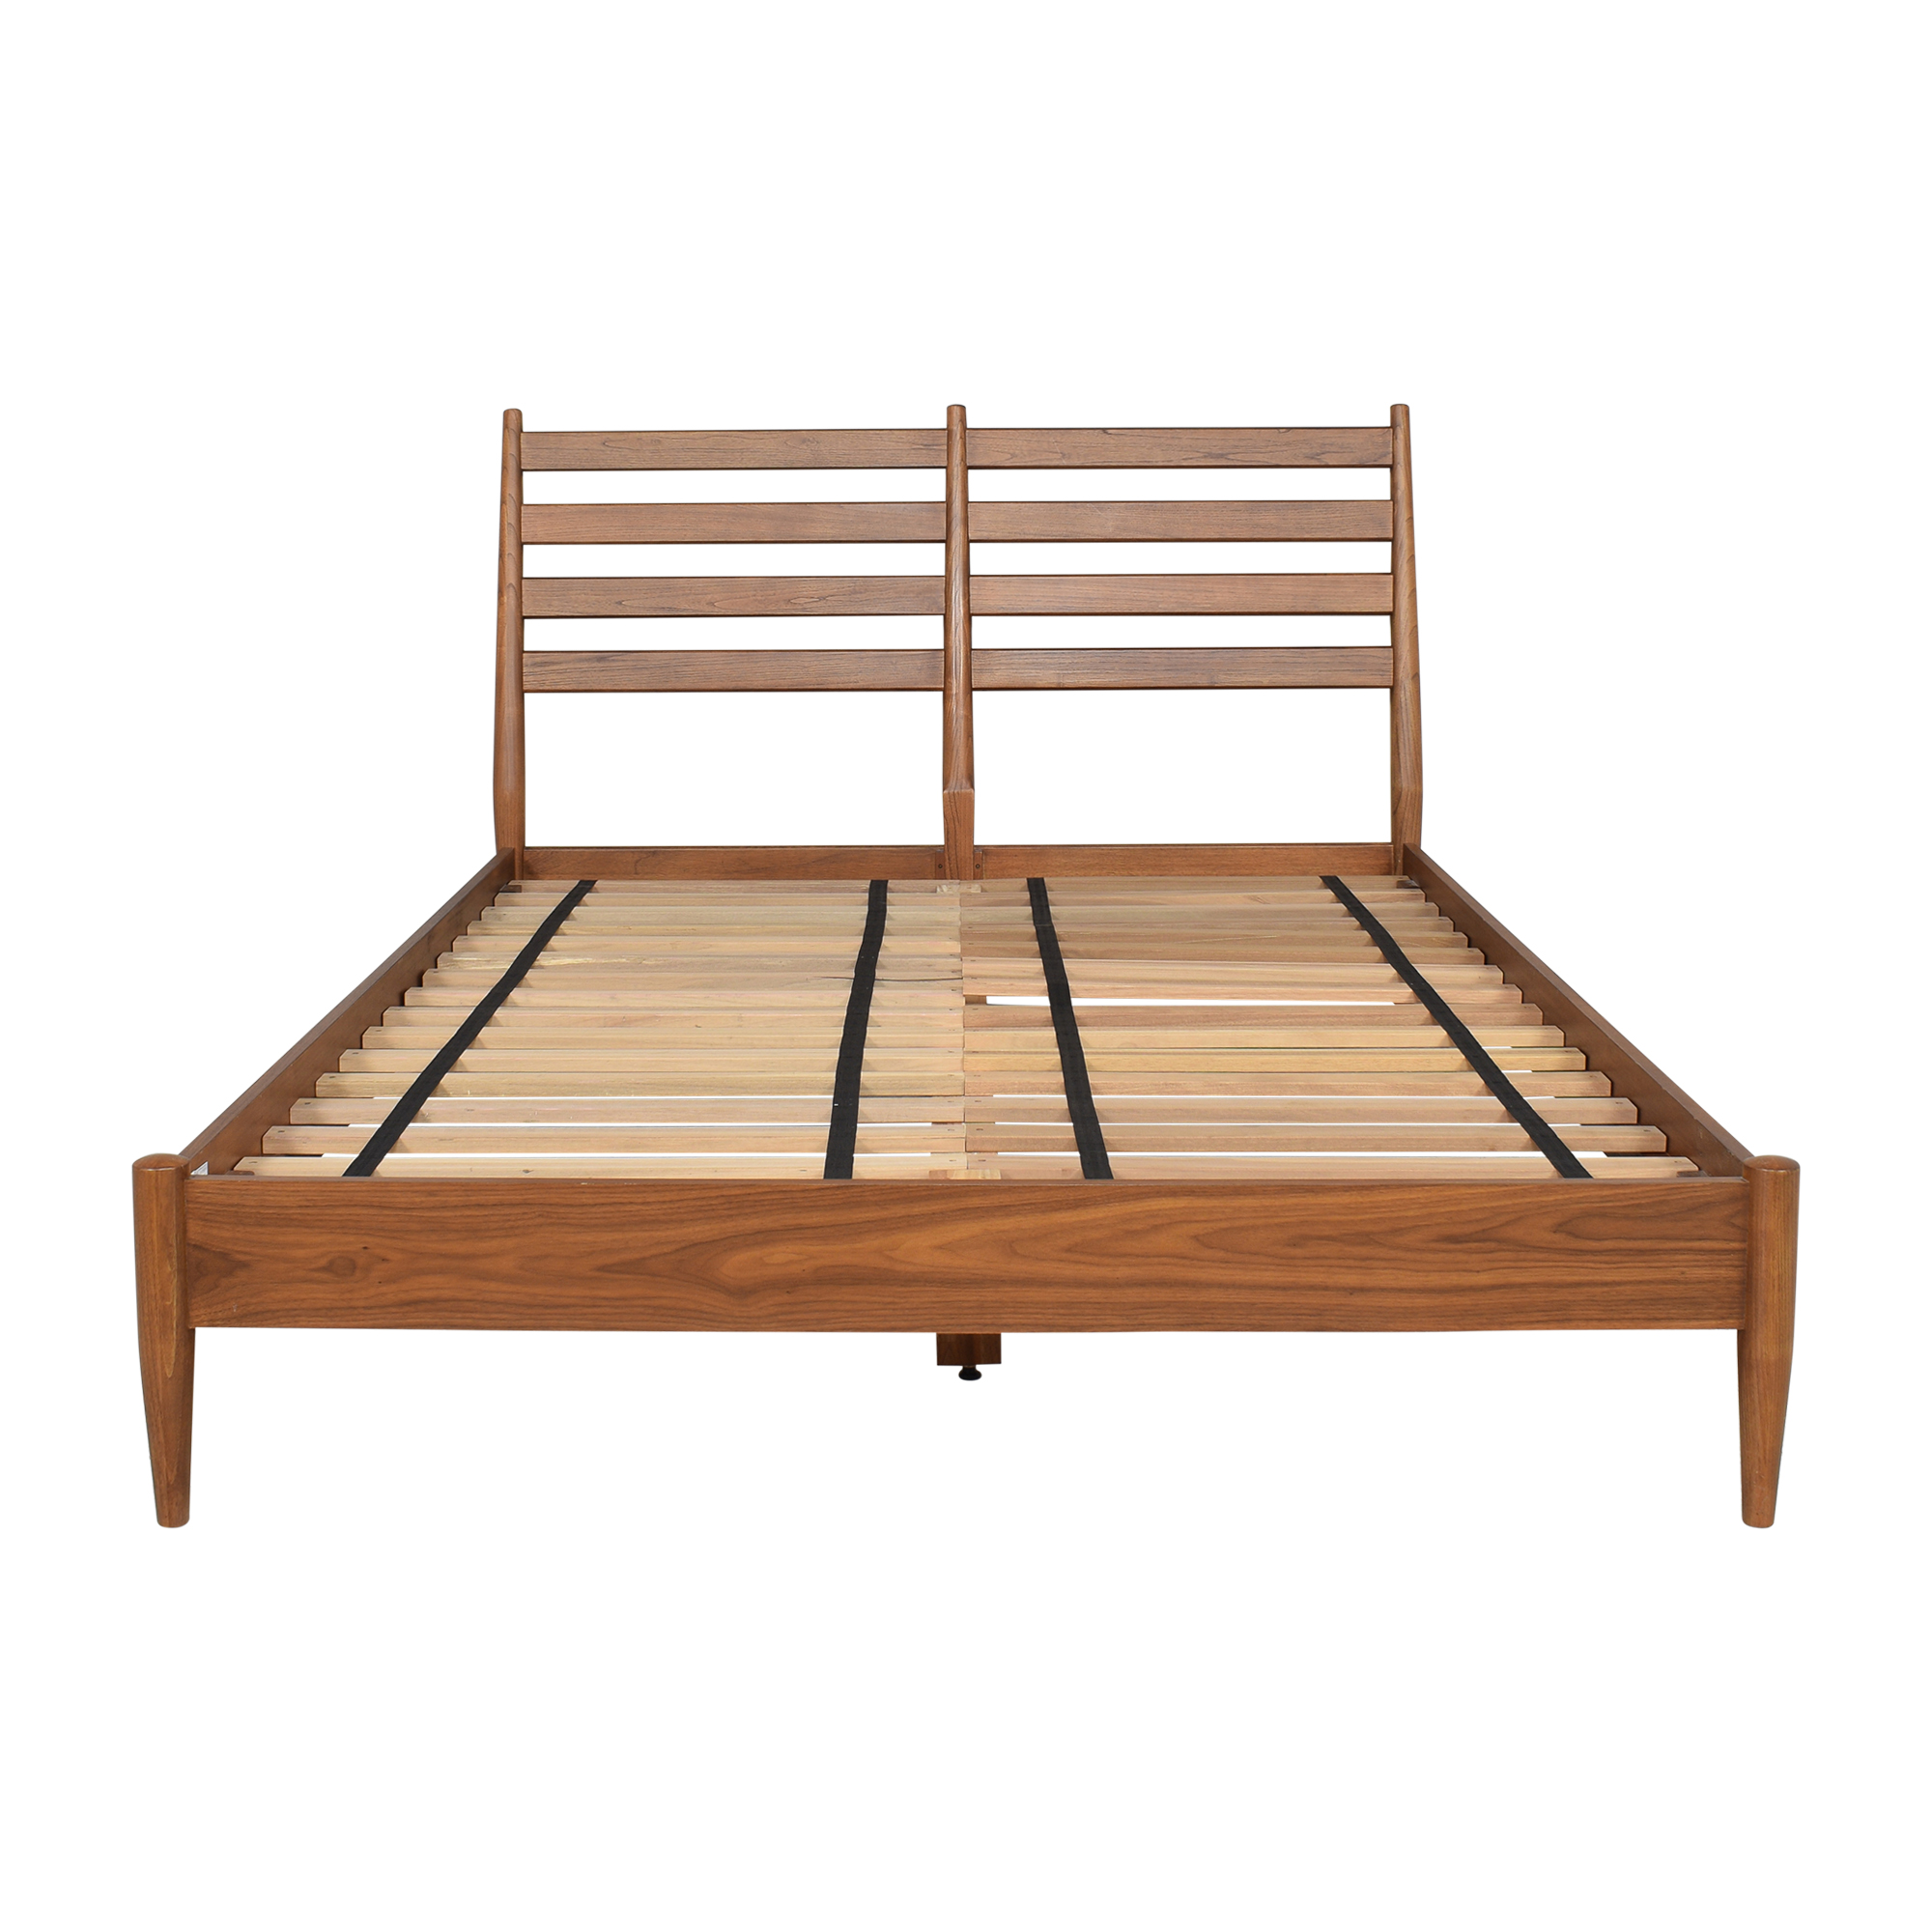 West Elm West Elm Arne Queen Bed dimensions